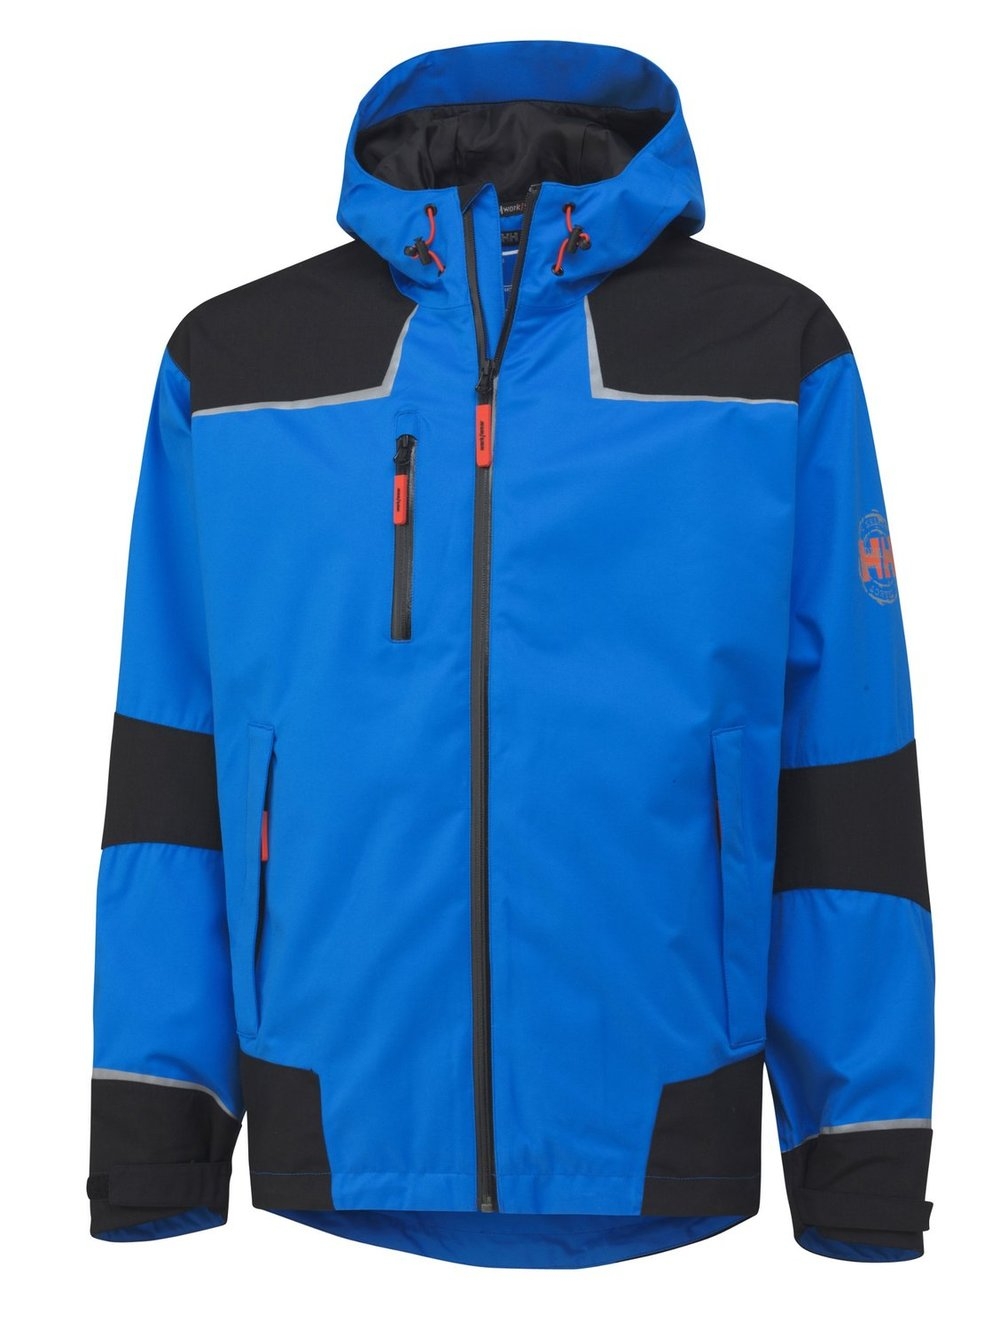 helly hansen blue jacket.jpg